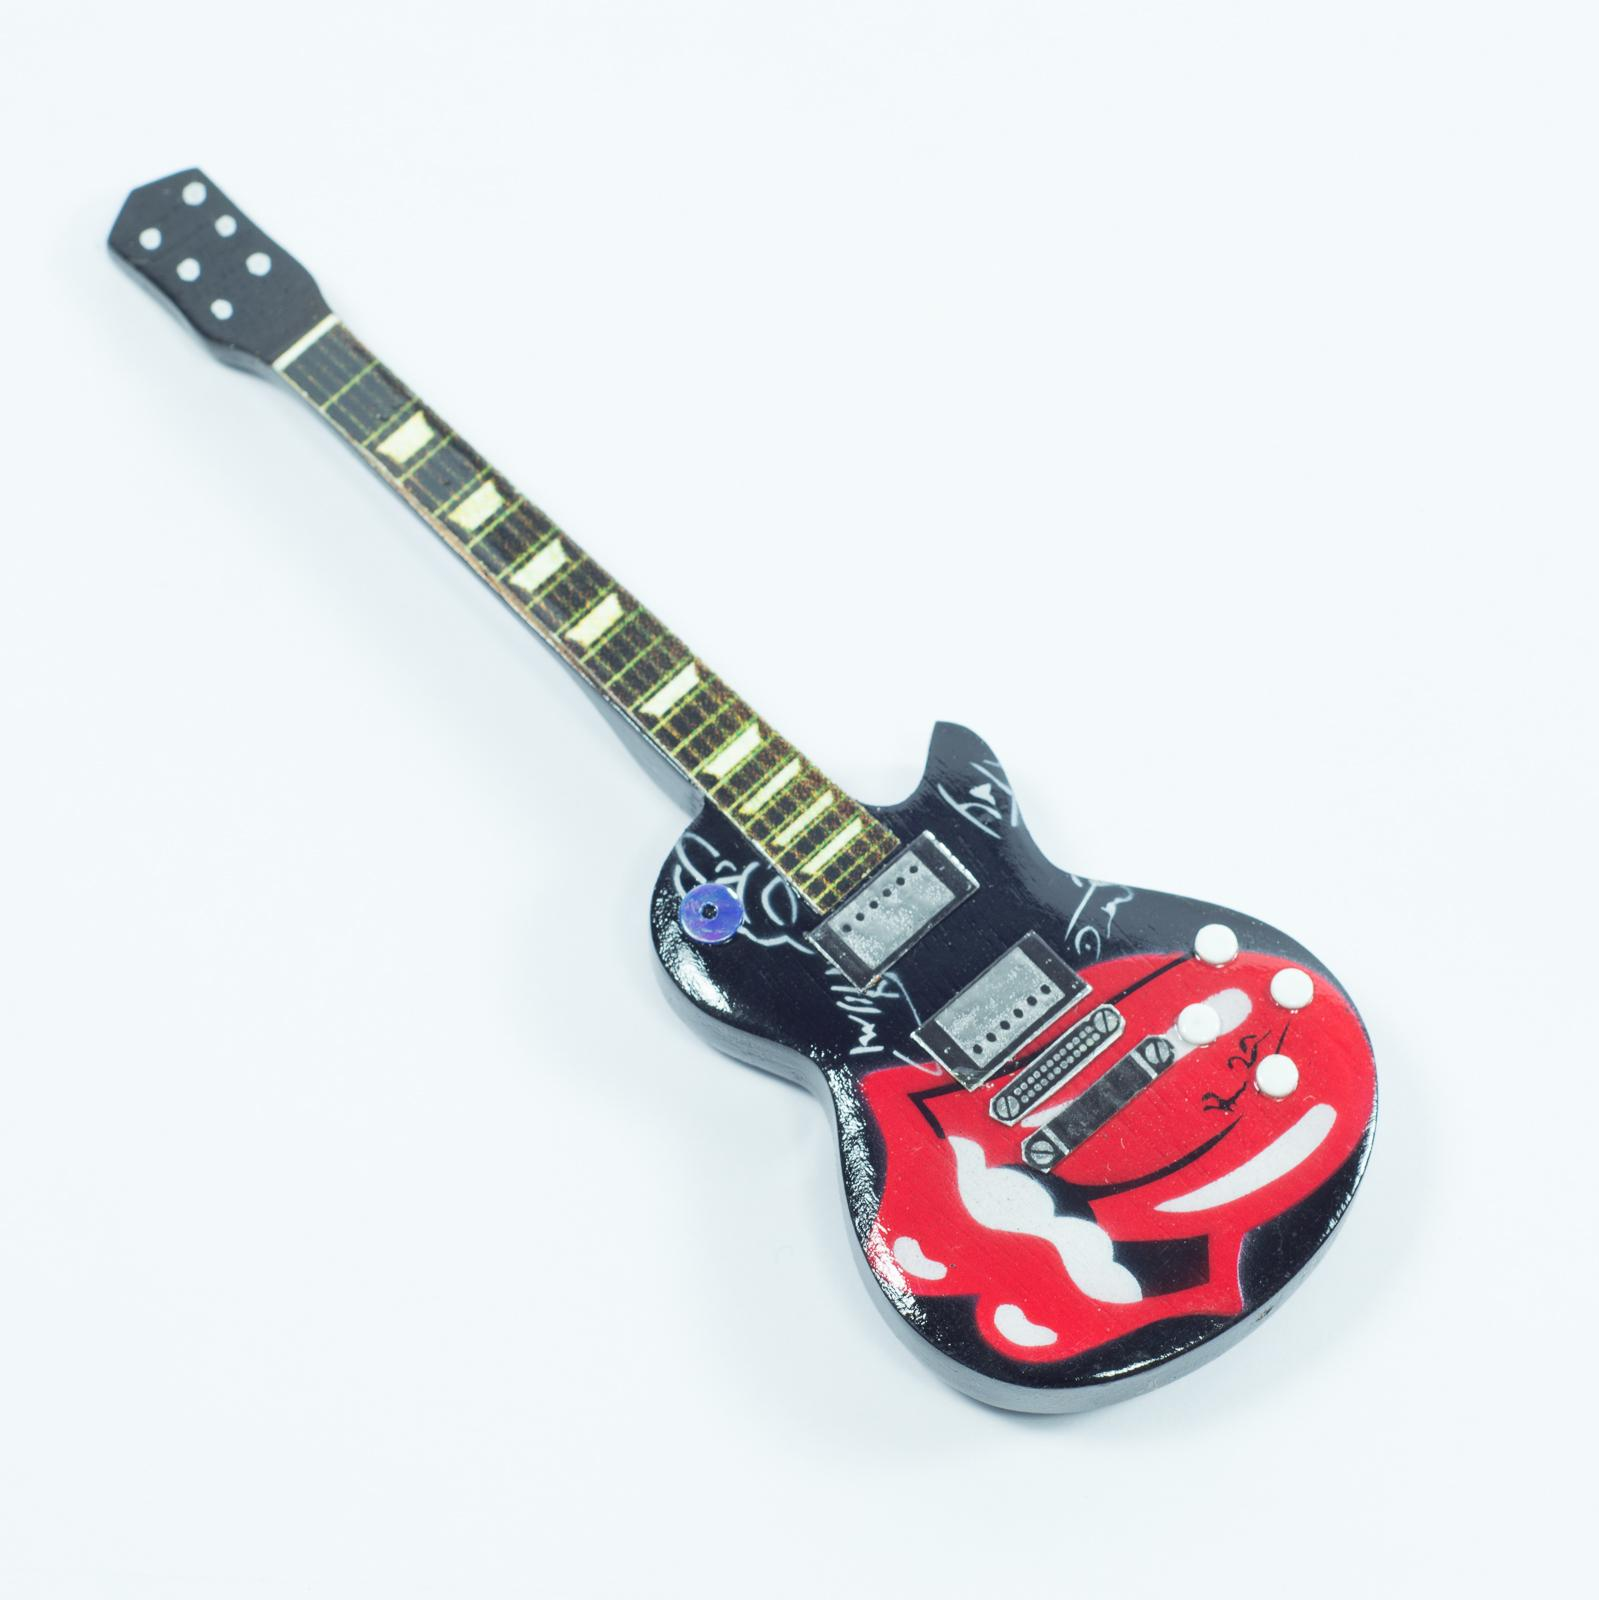 Guitar Shaped Magnet For Fridge - Rolling Stones - Tribute